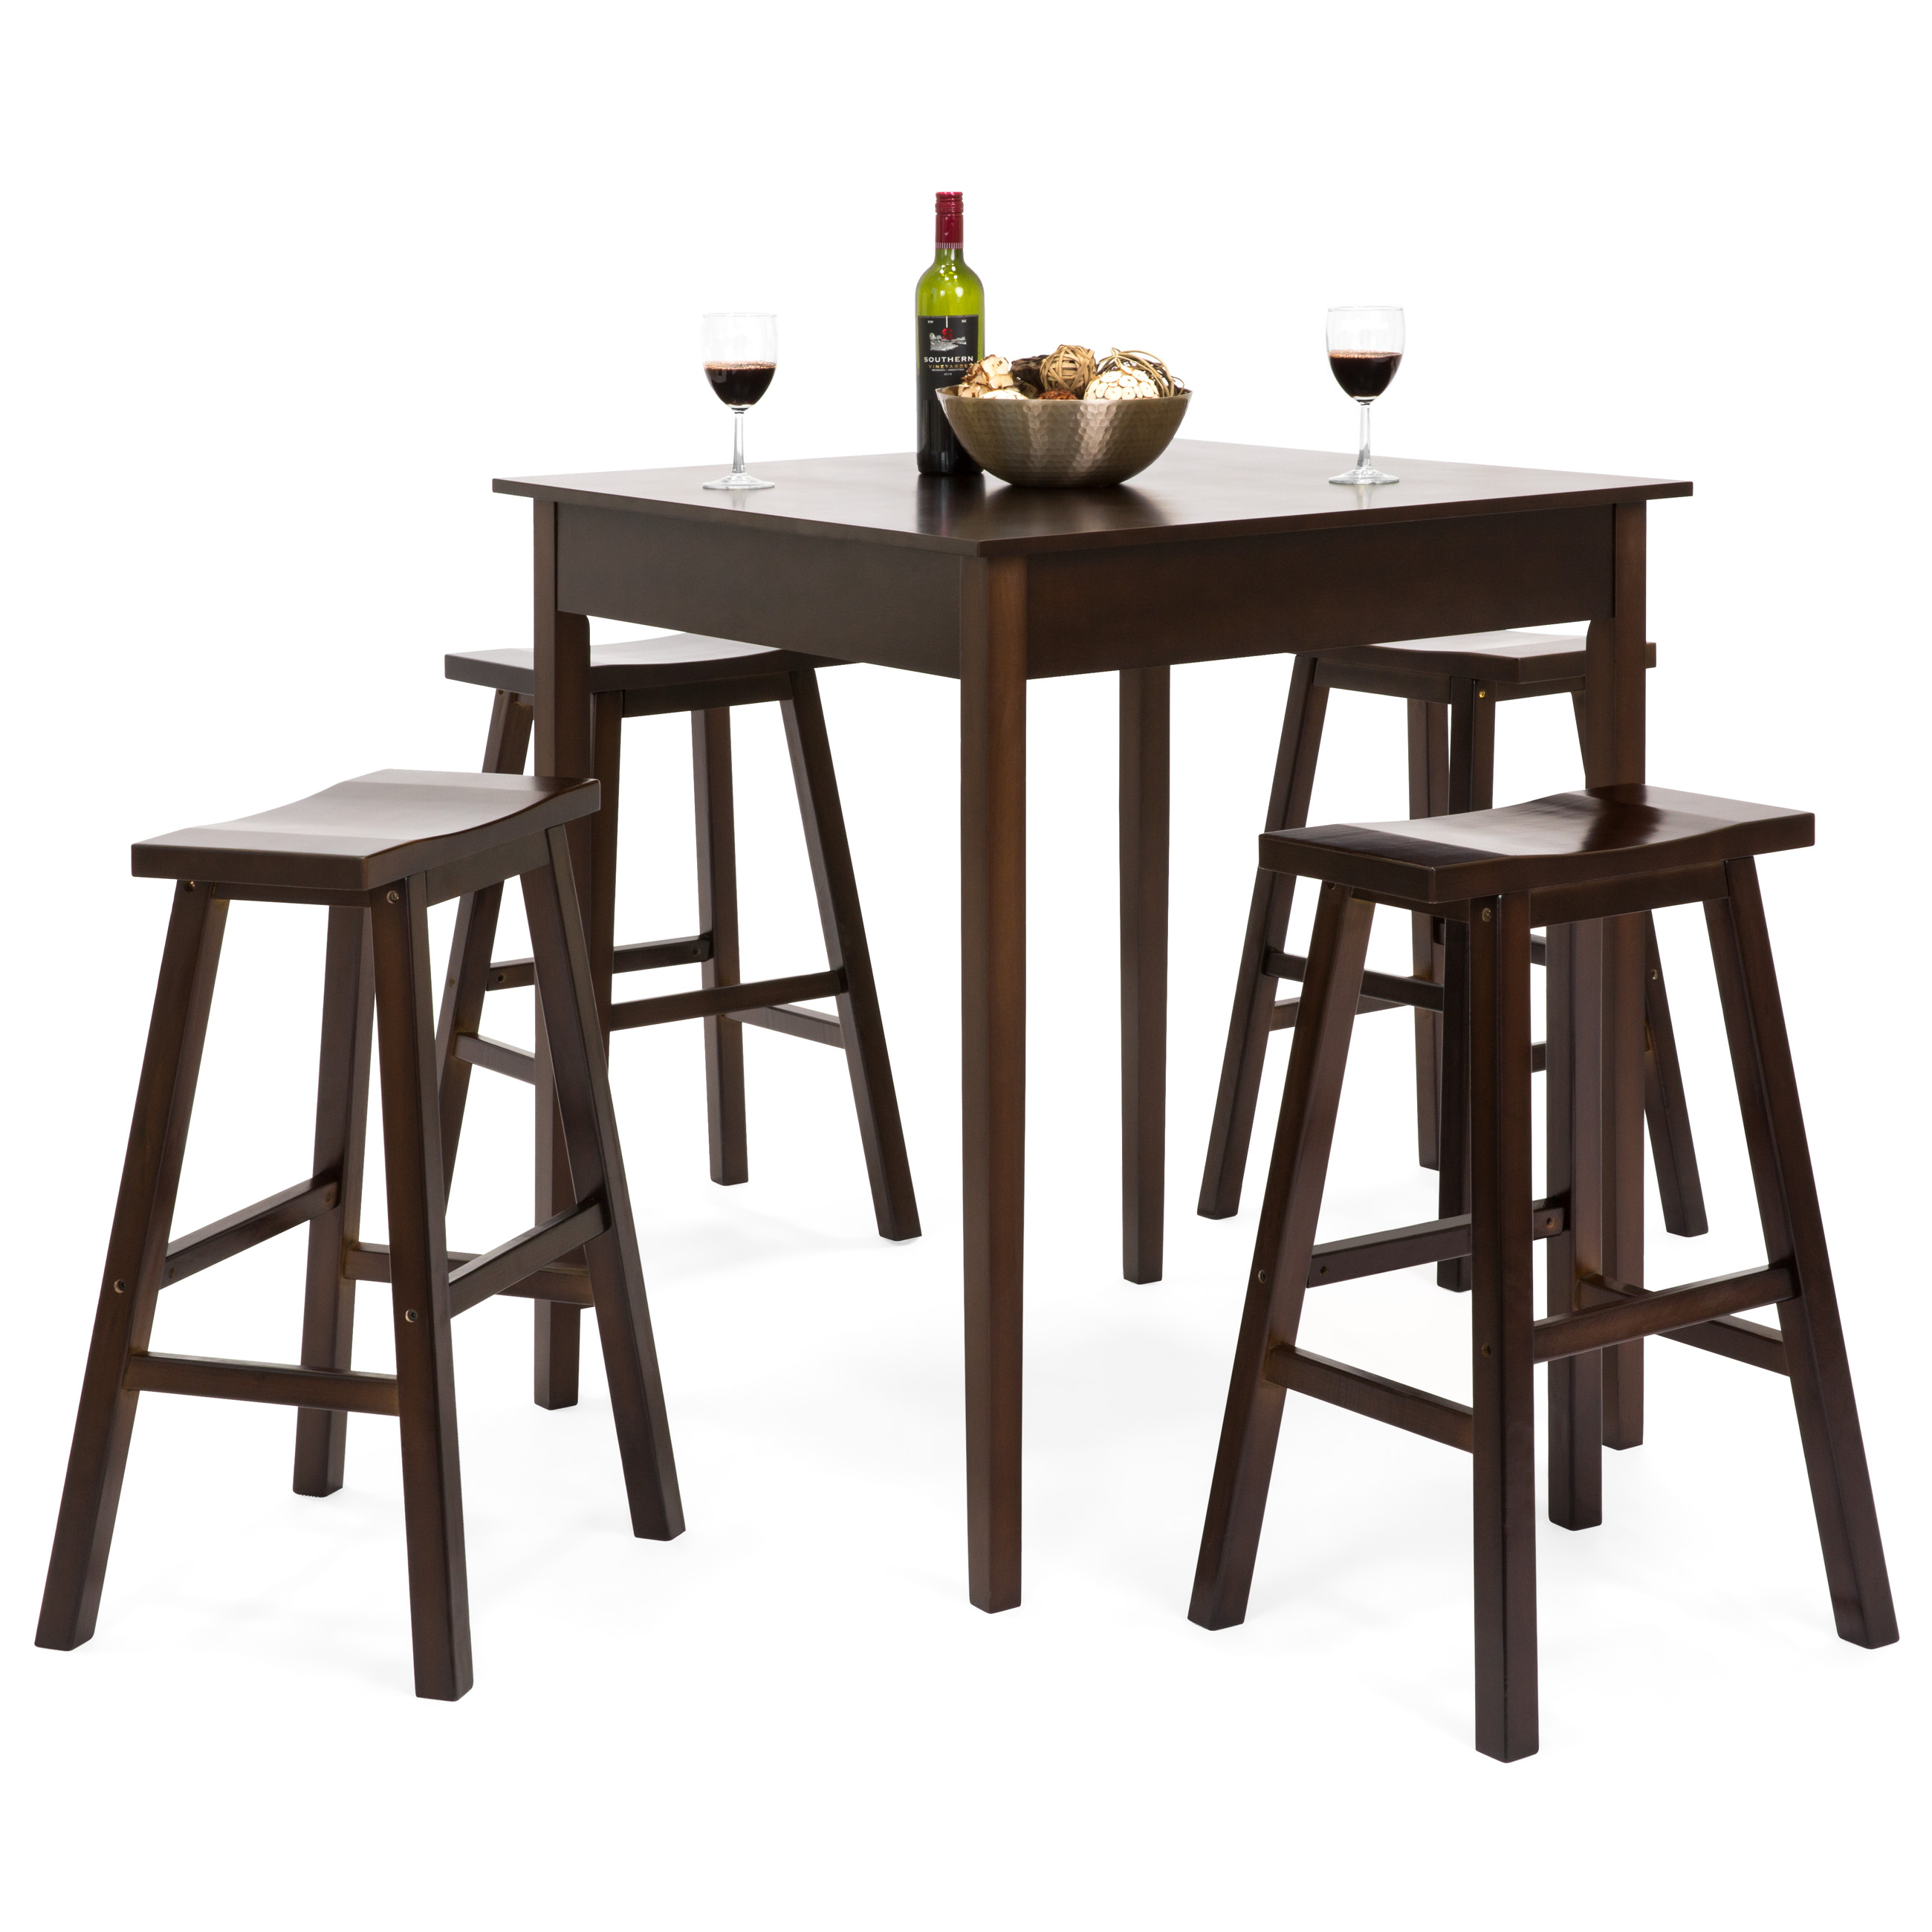 Best Choice Products 5 Piece Solid Wood Dining Pub Pub Table Set with 4 Backless Saddle Stools by Best Choice Products